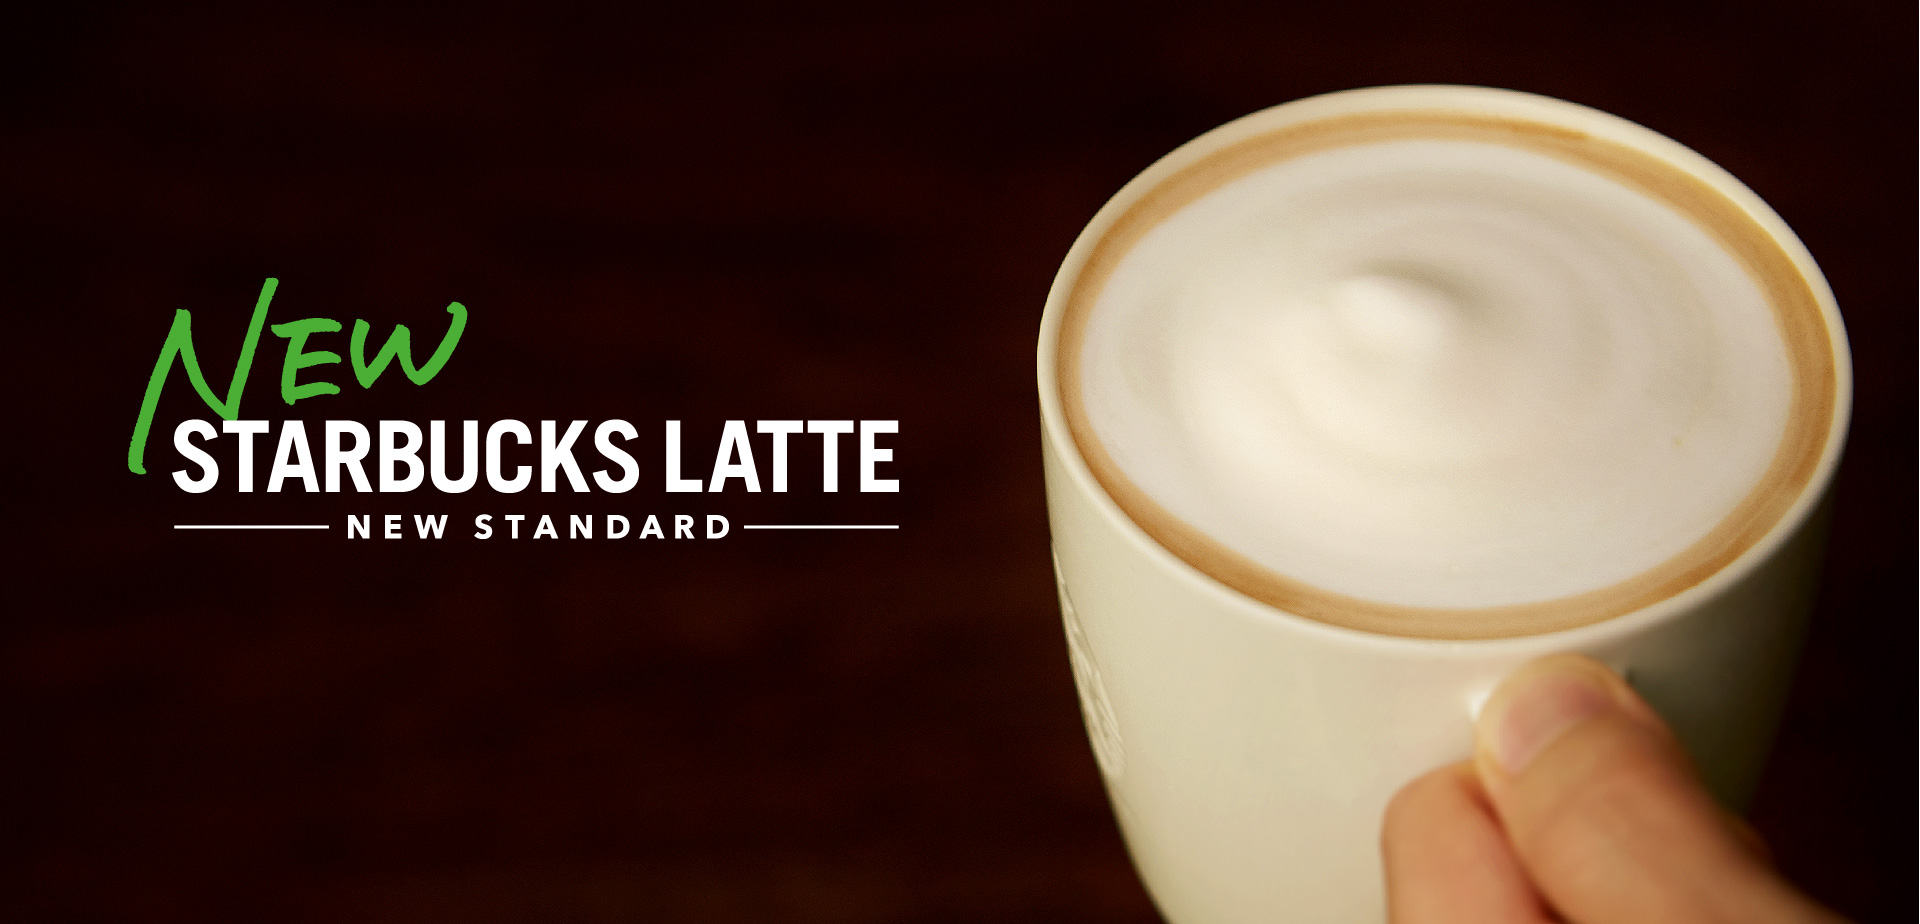 NEW STARBUCKS LATTE NEW STANDARD